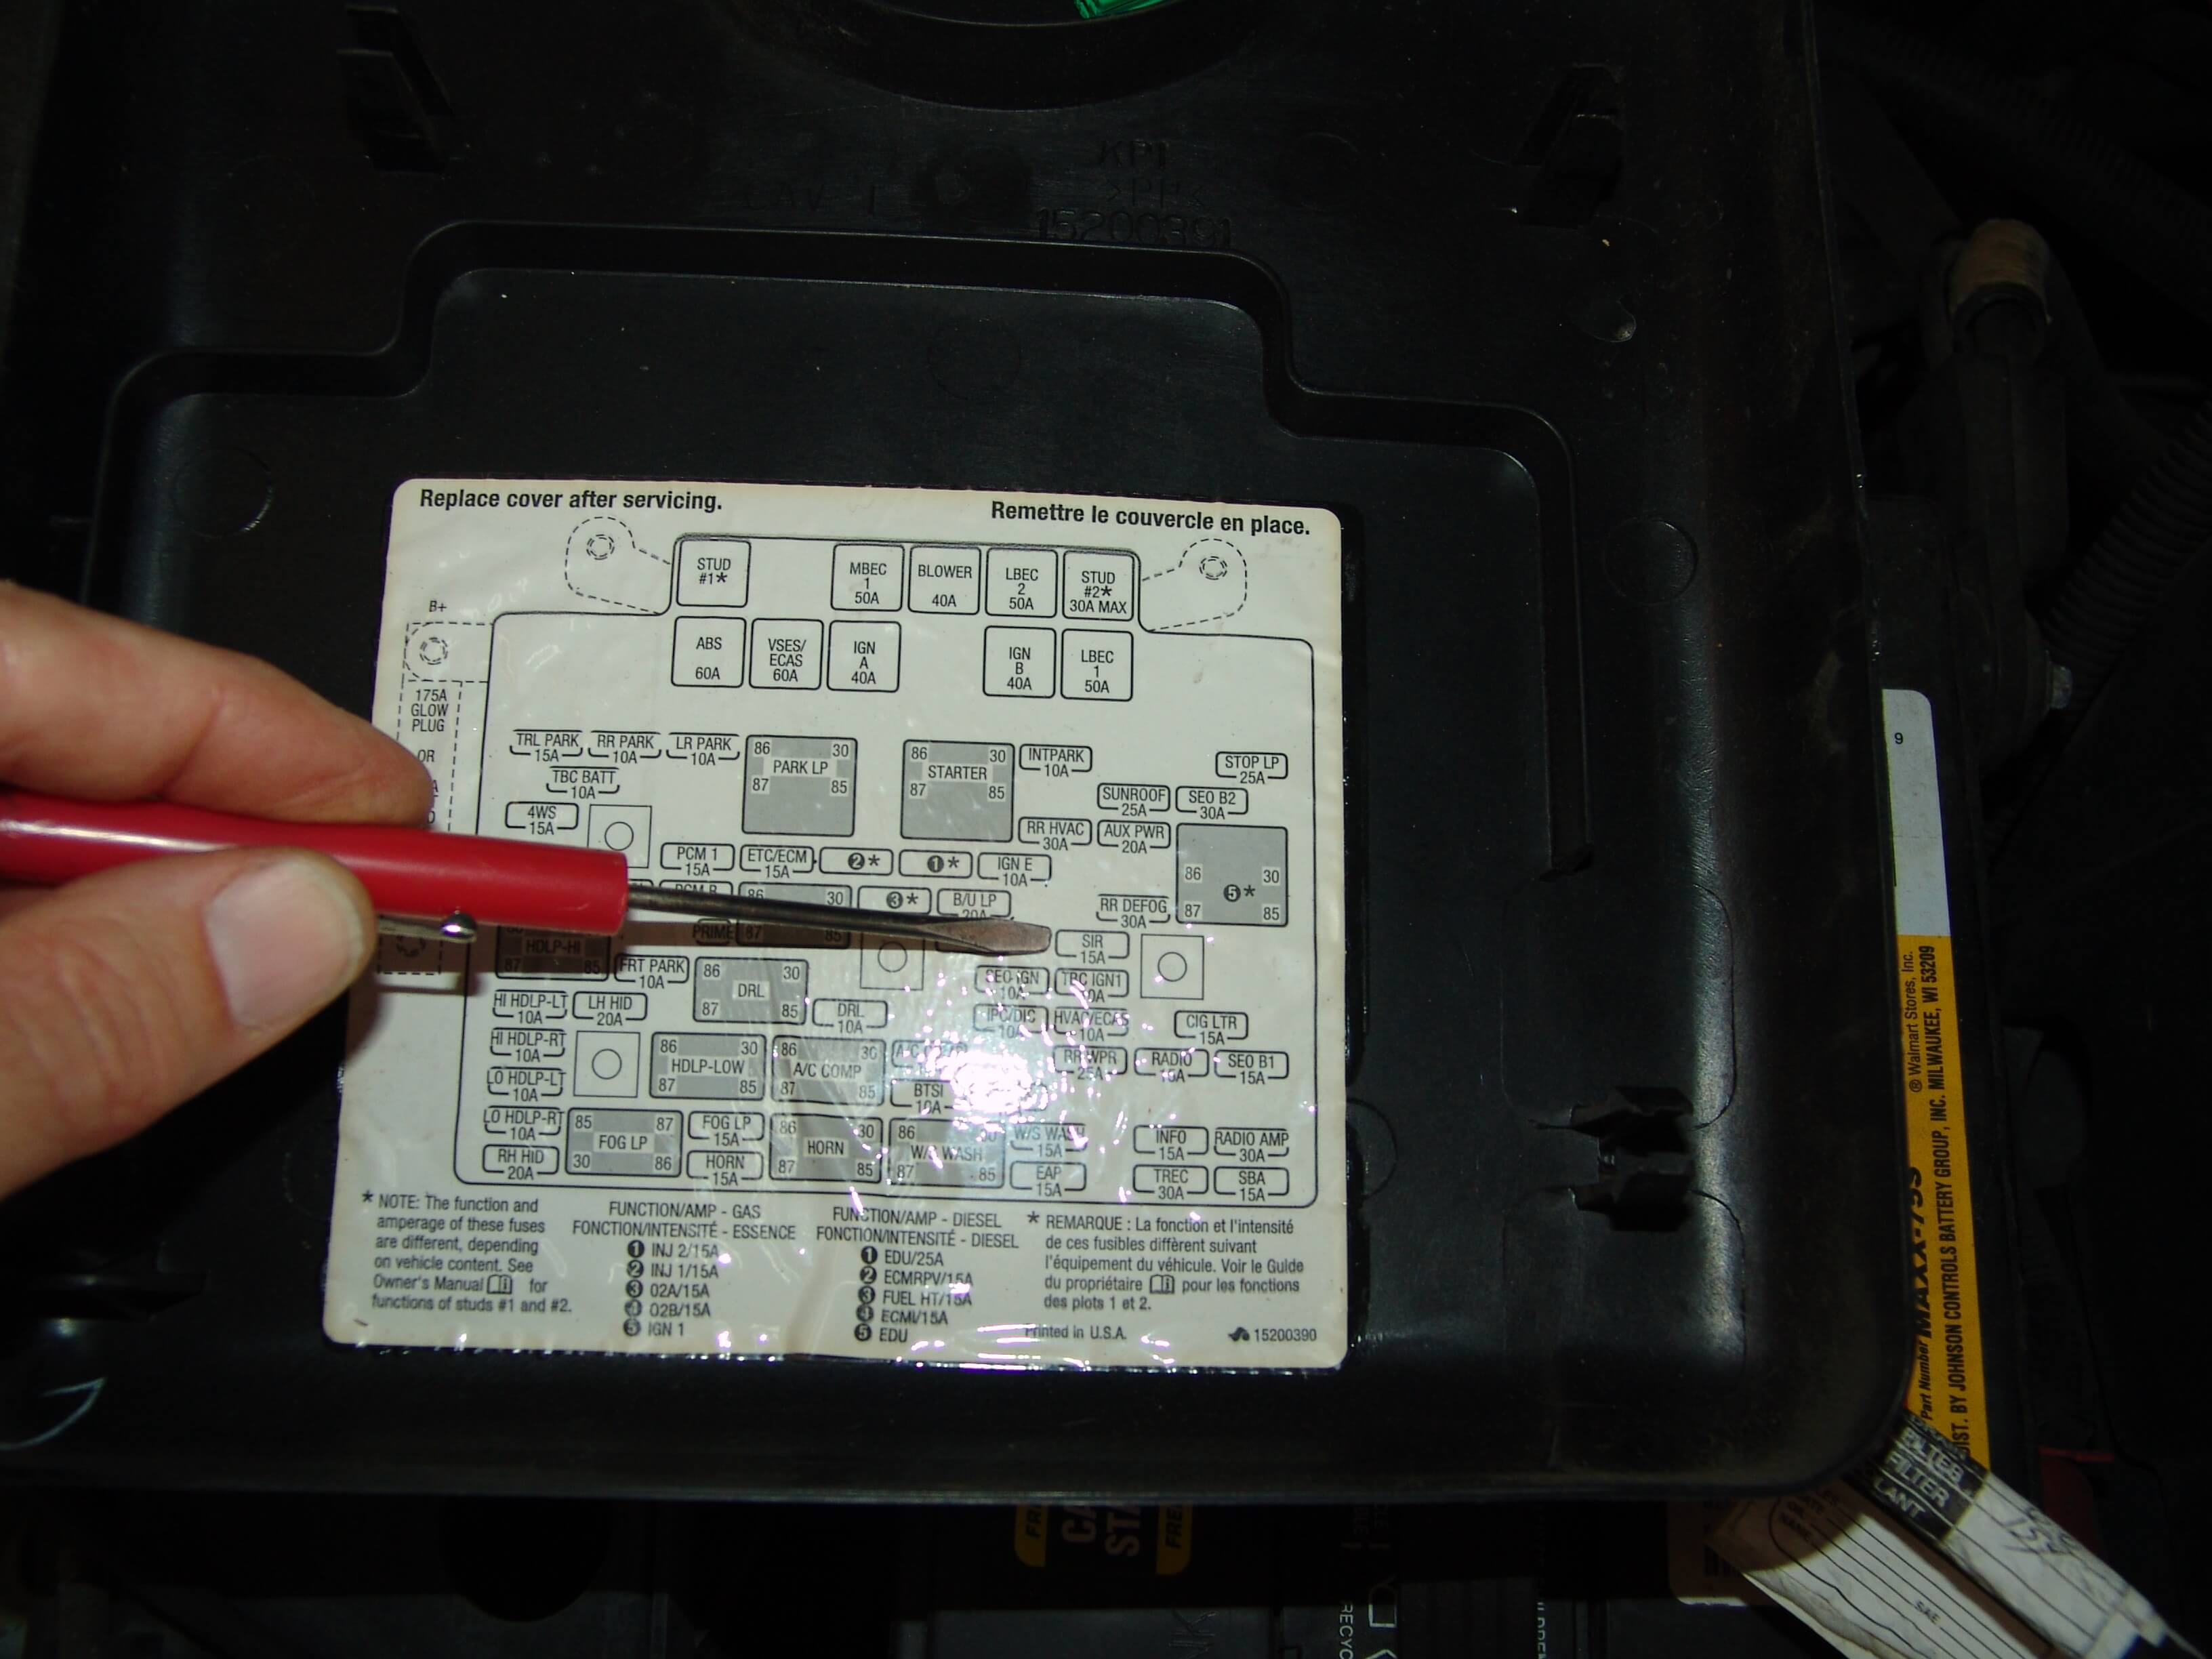 2004 Gmc Yukon Fuse Box Location Another Blog About Wiring Diagram 2002 Chevy Trailblazer Envoy 04